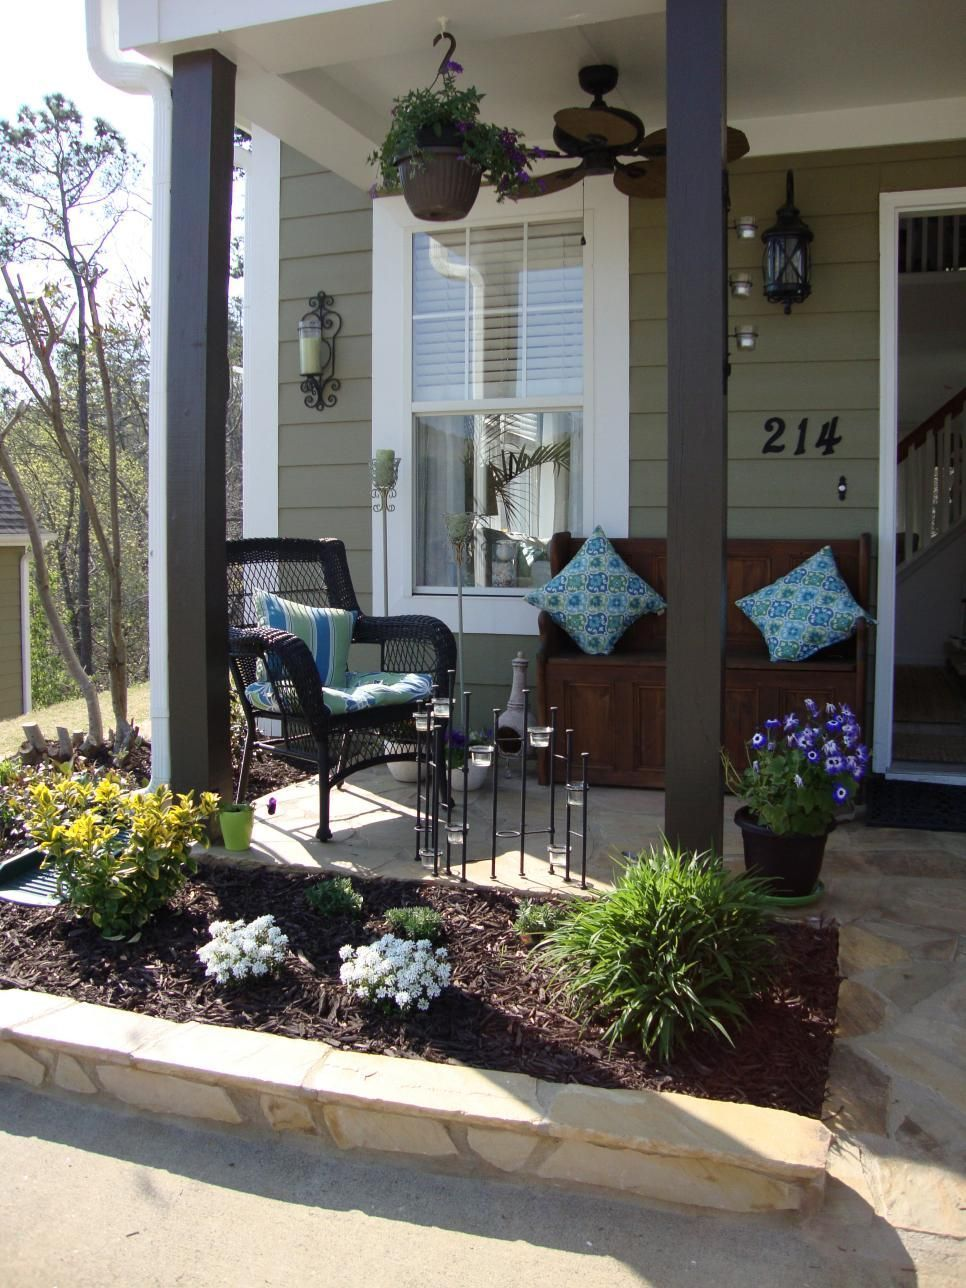 Awesome 45 Beautiful Small Front Porch Decor Ideas For Summer More At Https Decoratr Small Front Porches Designs Summer Front Porches Front Porch Decorating